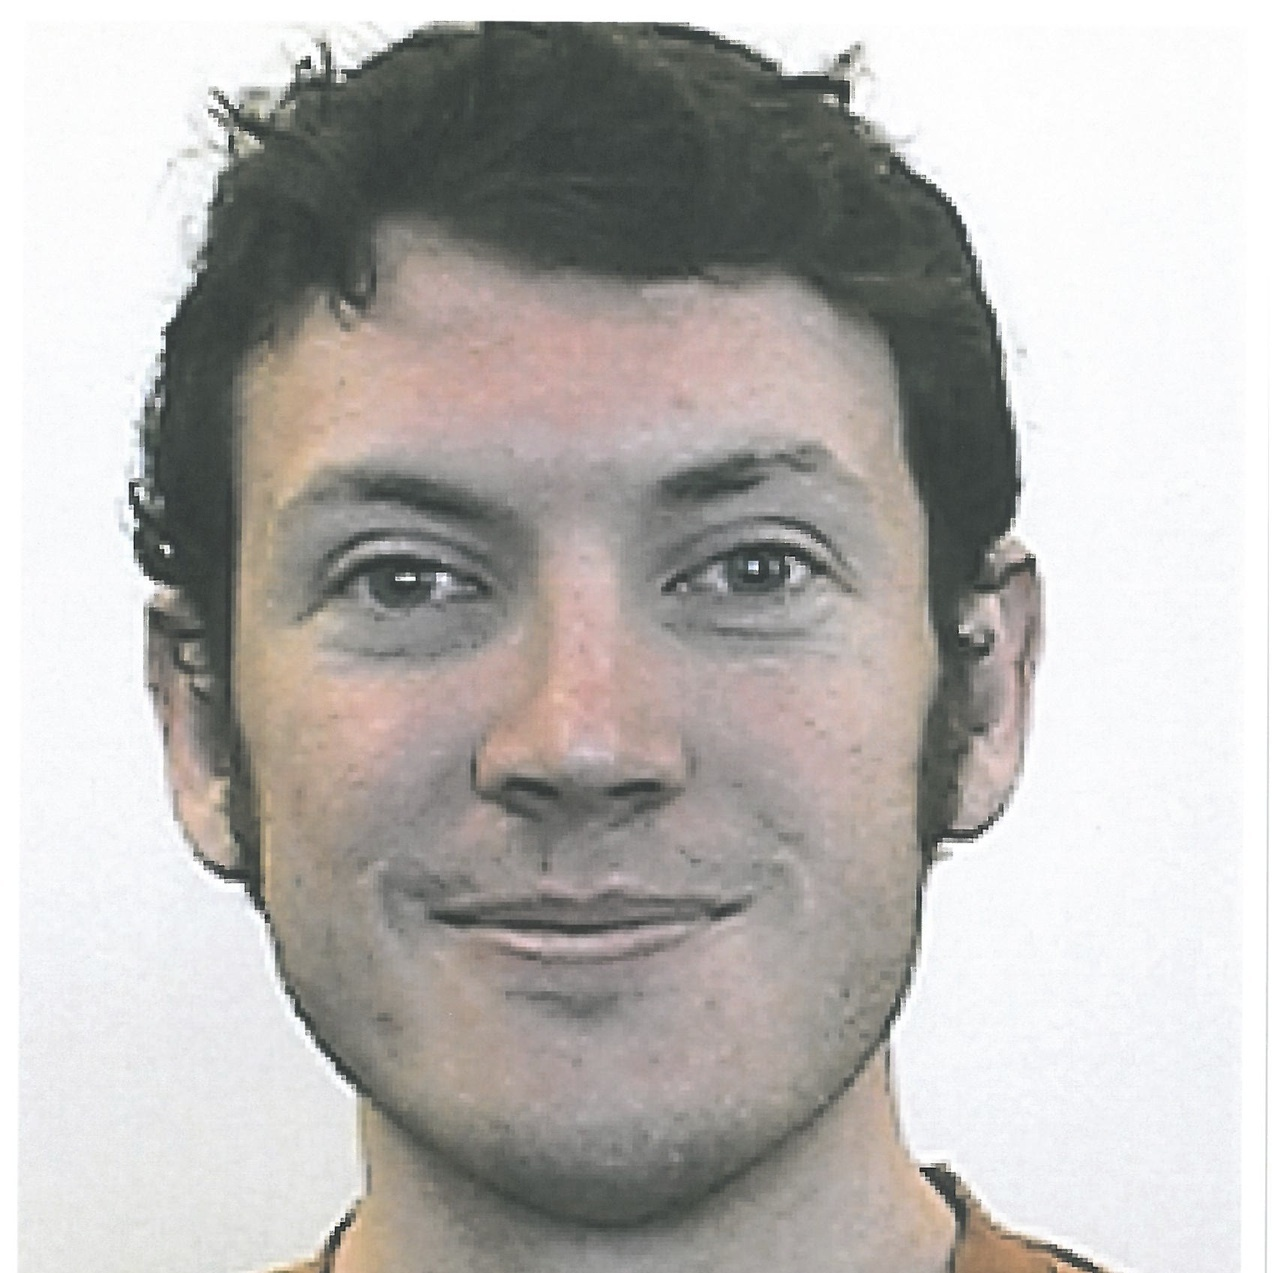 The photo of James Holmes released by the University of Colorado Denver.